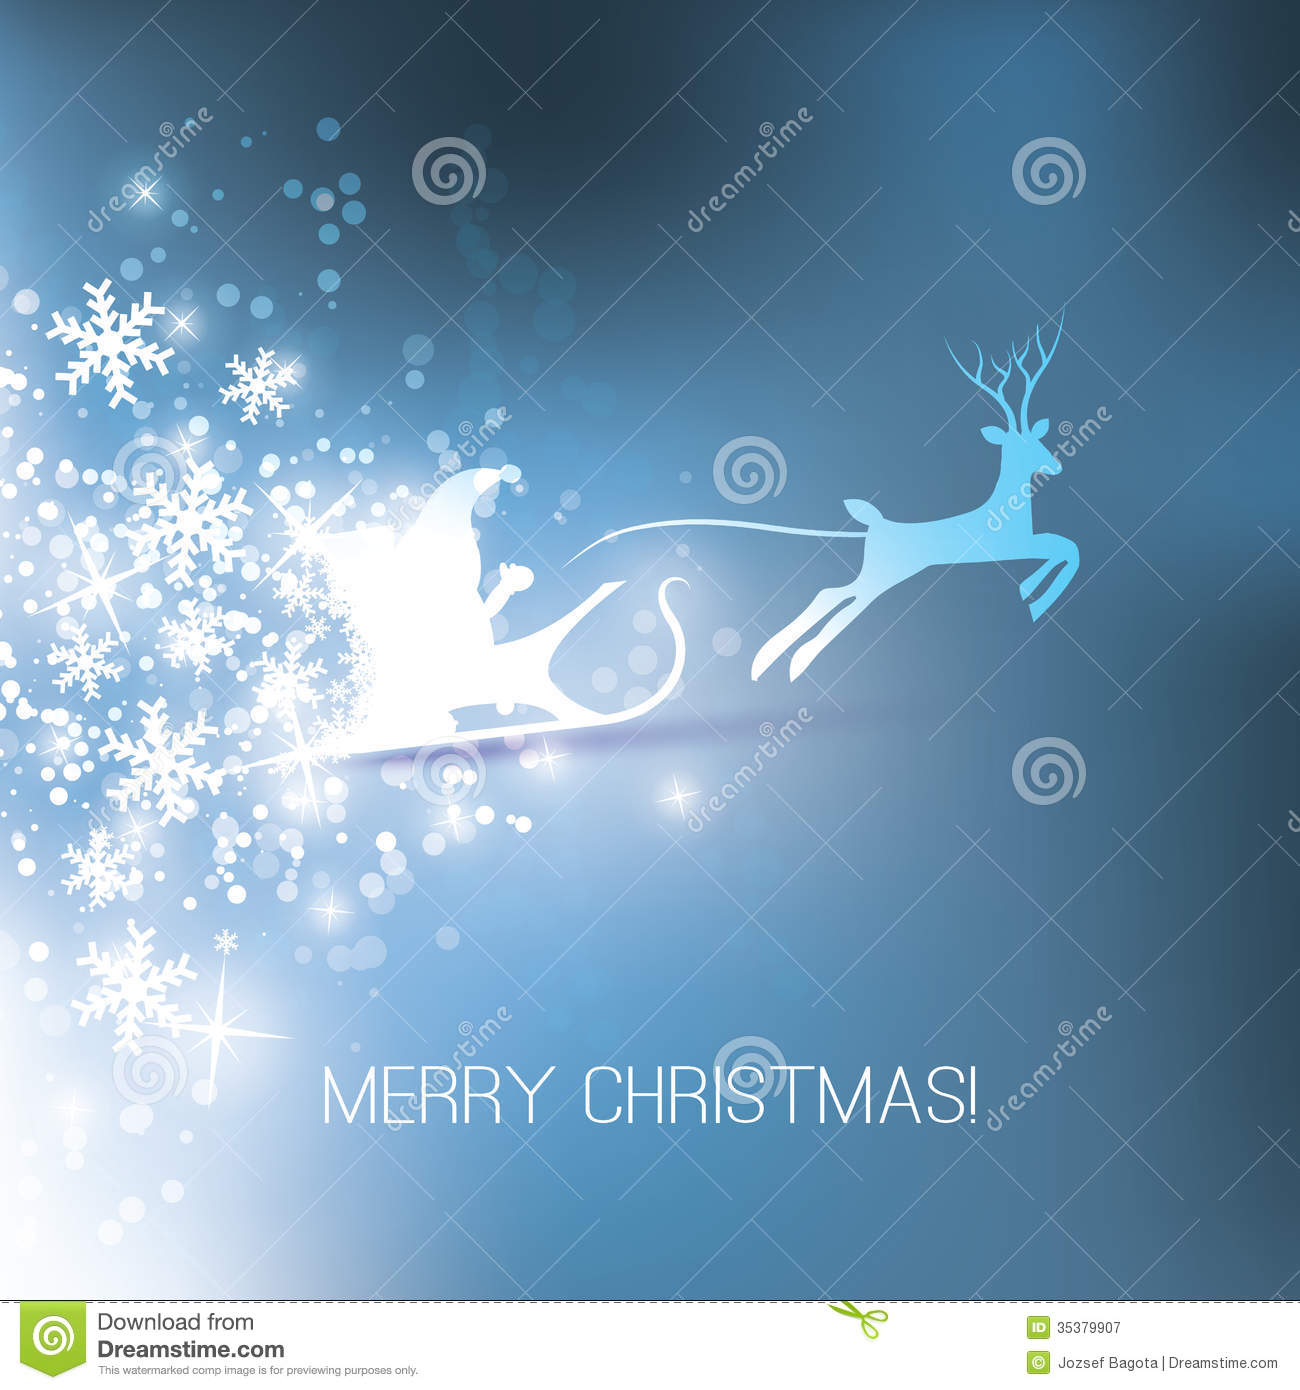 watch more like holiday flyer background designs blue abstract shiny christmas card flyer cover or background design